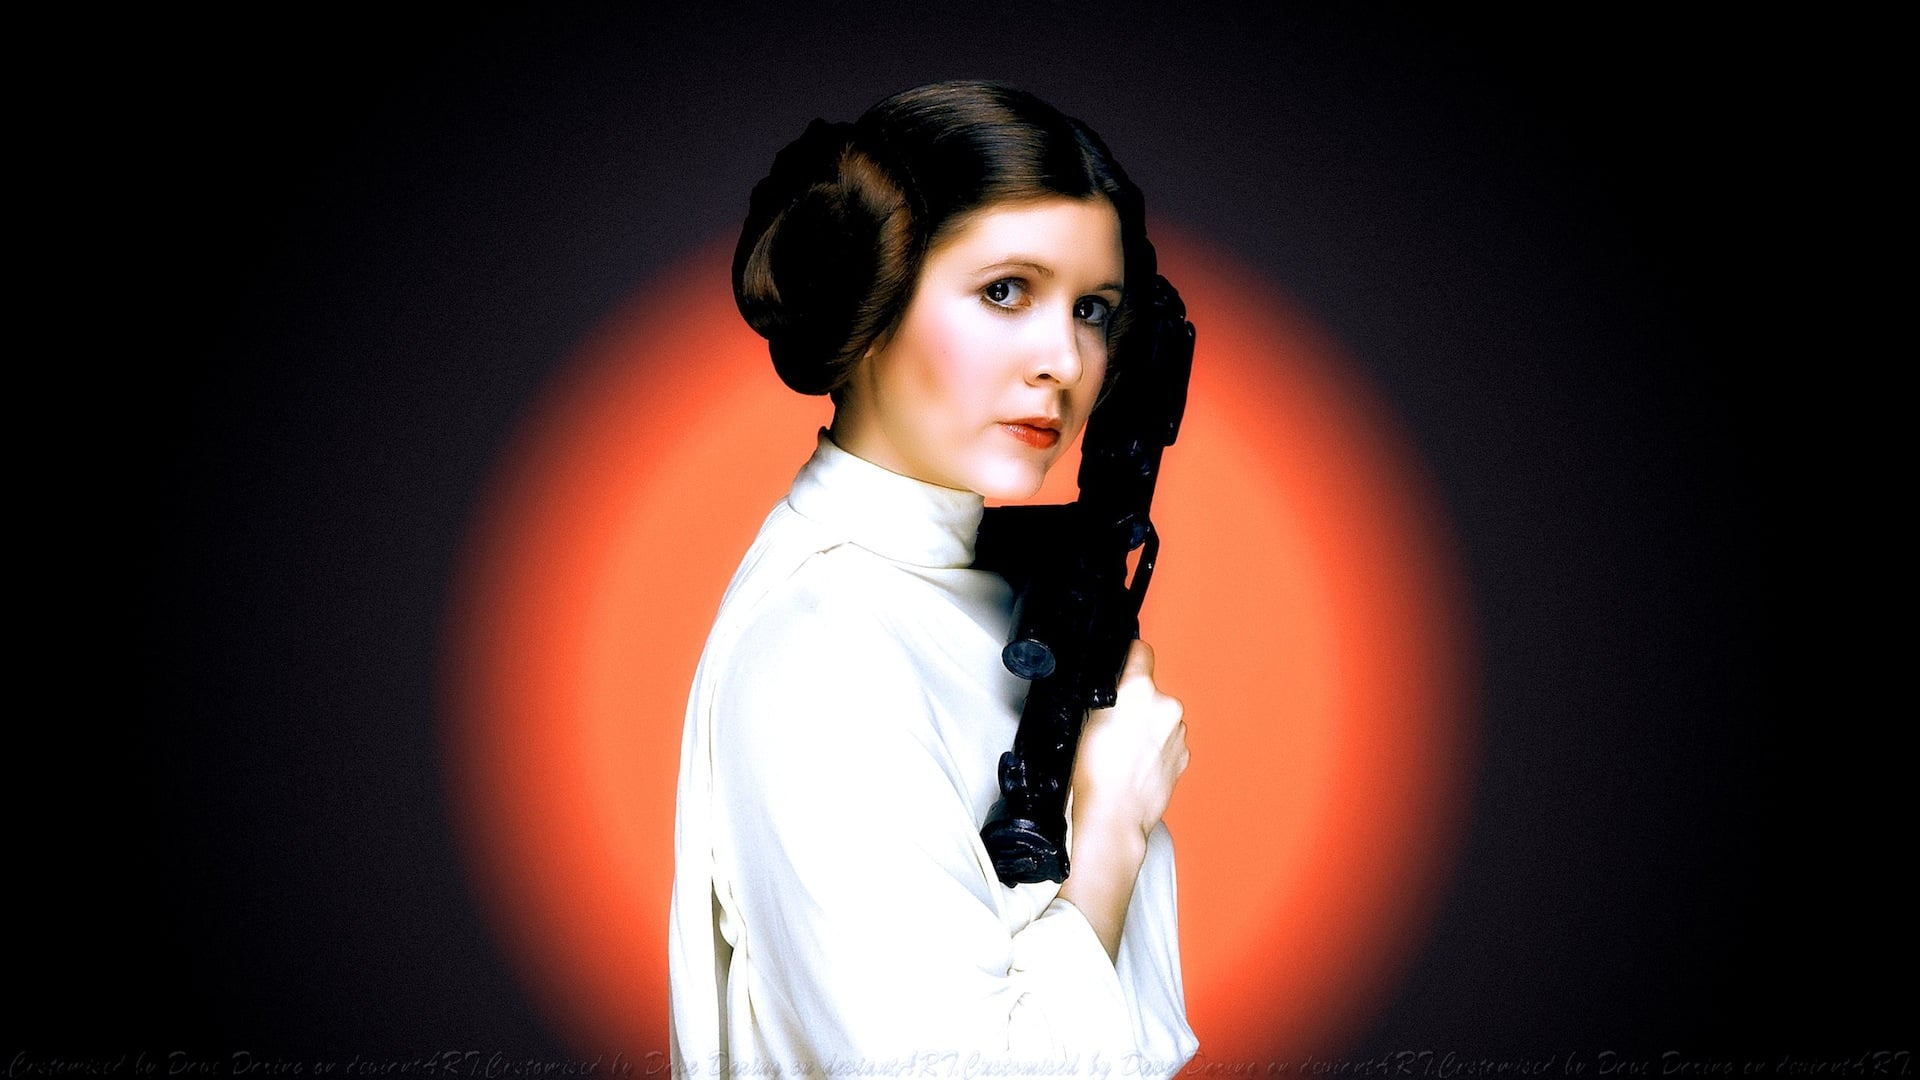 zosnulá Carrie Fisher star wars 9